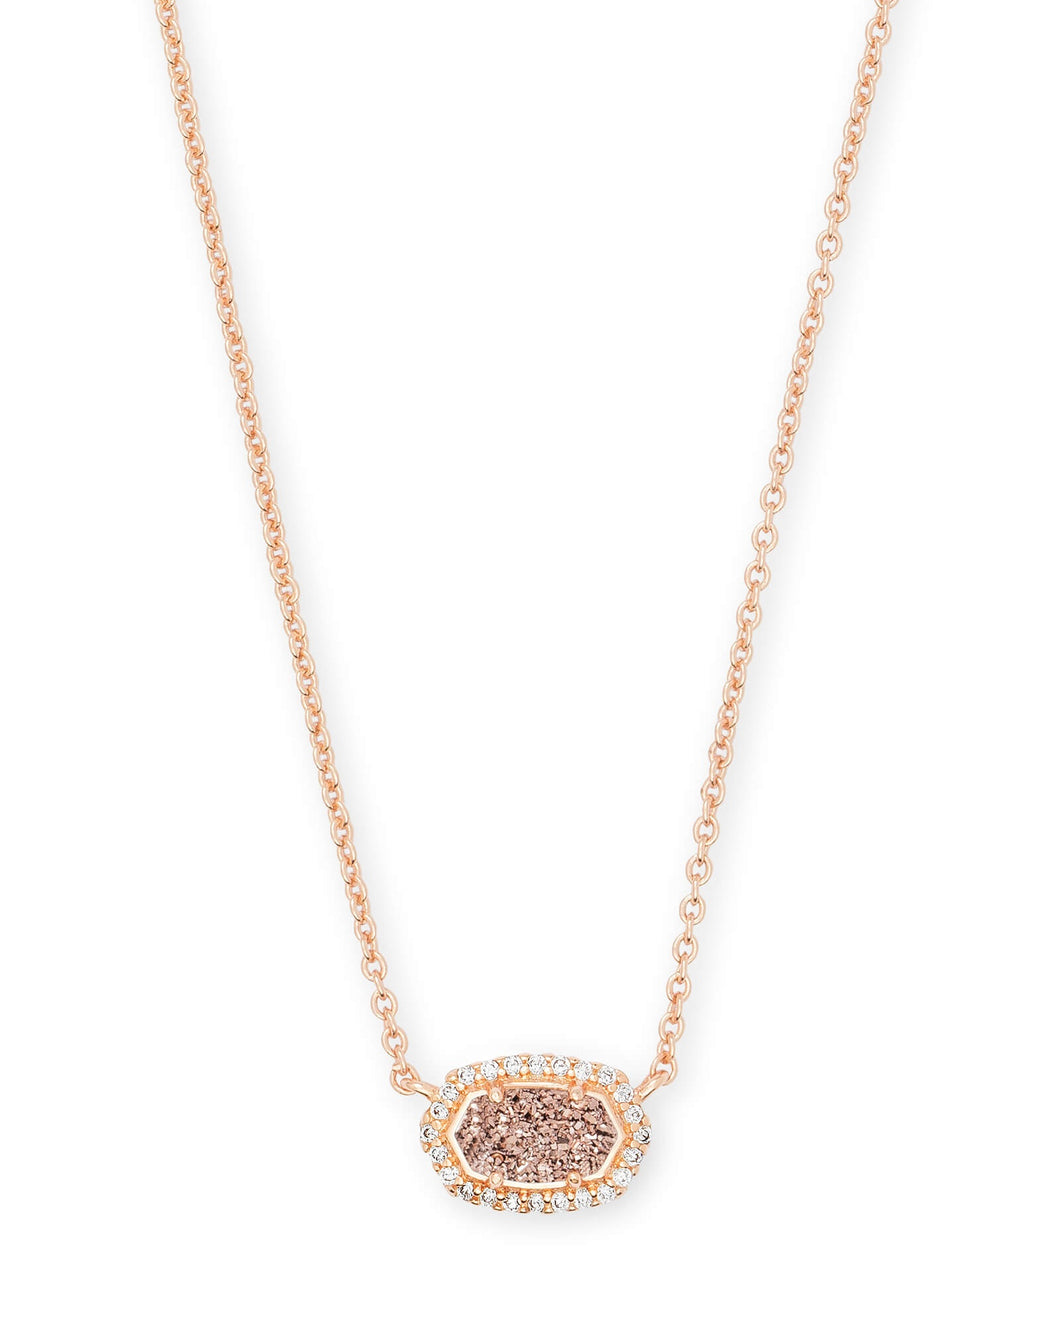 Chelsea Rose Gold Pendant Necklace-Rose Gold Drusy